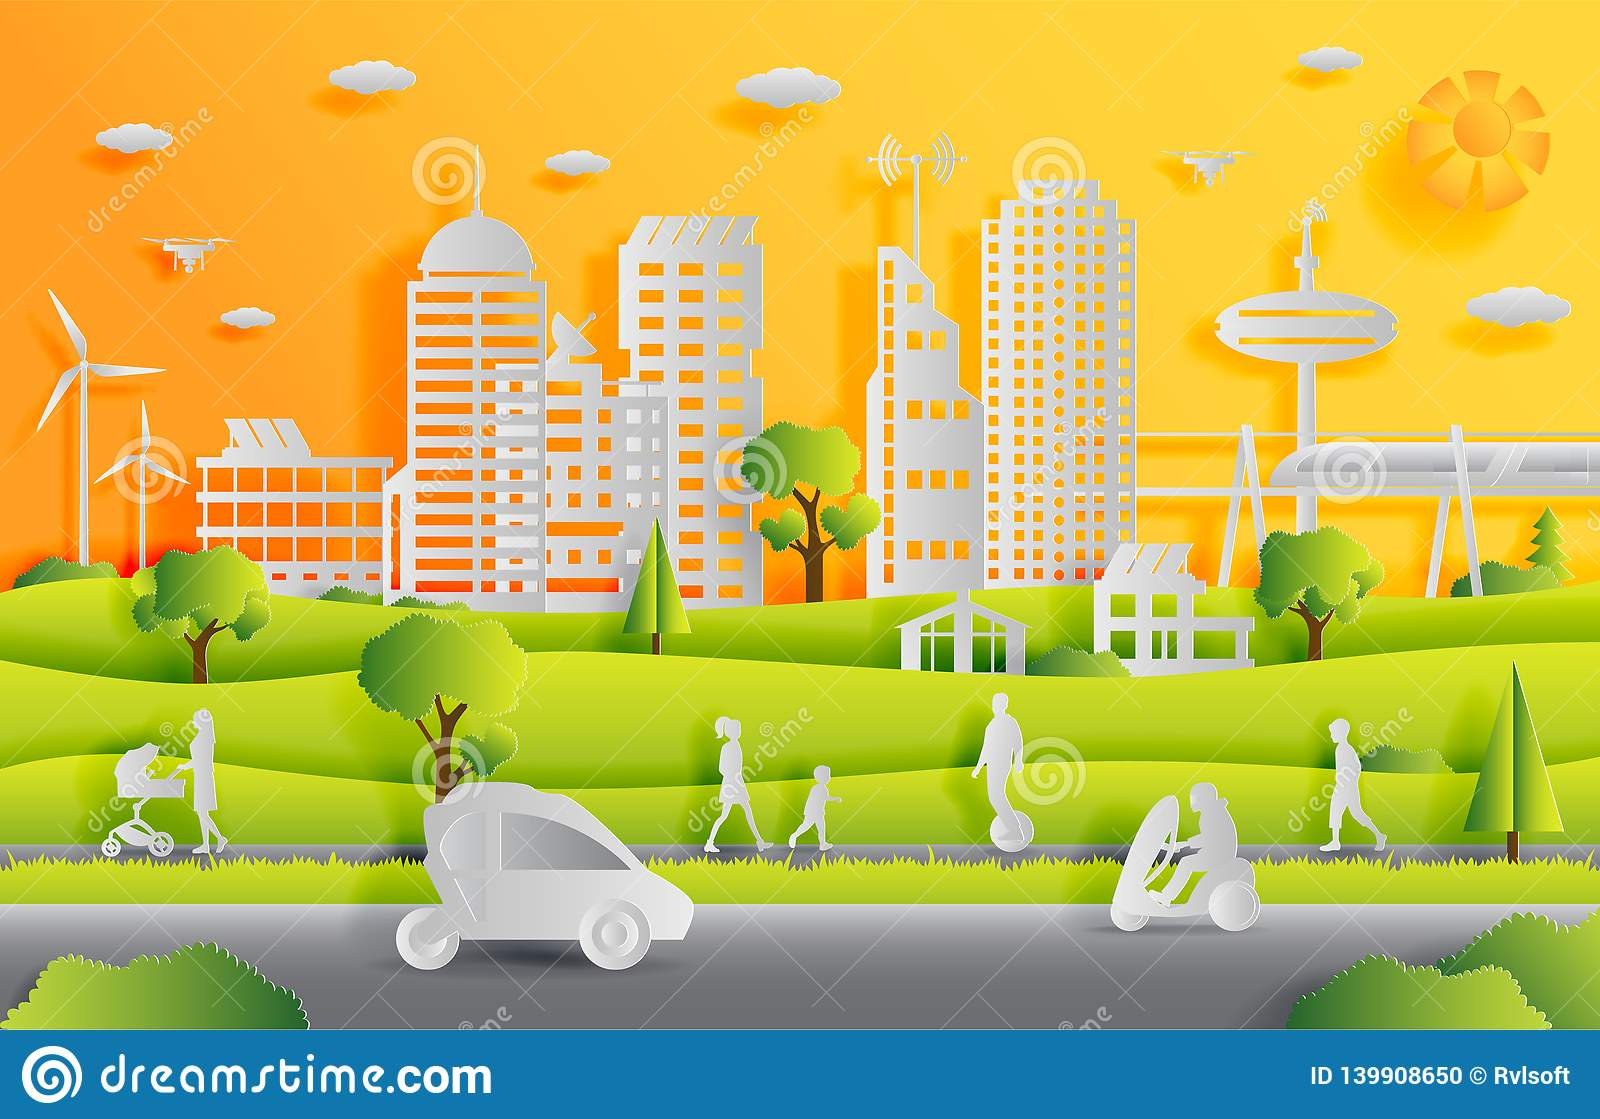 Concept of smart city with technologies of future and urban innovations